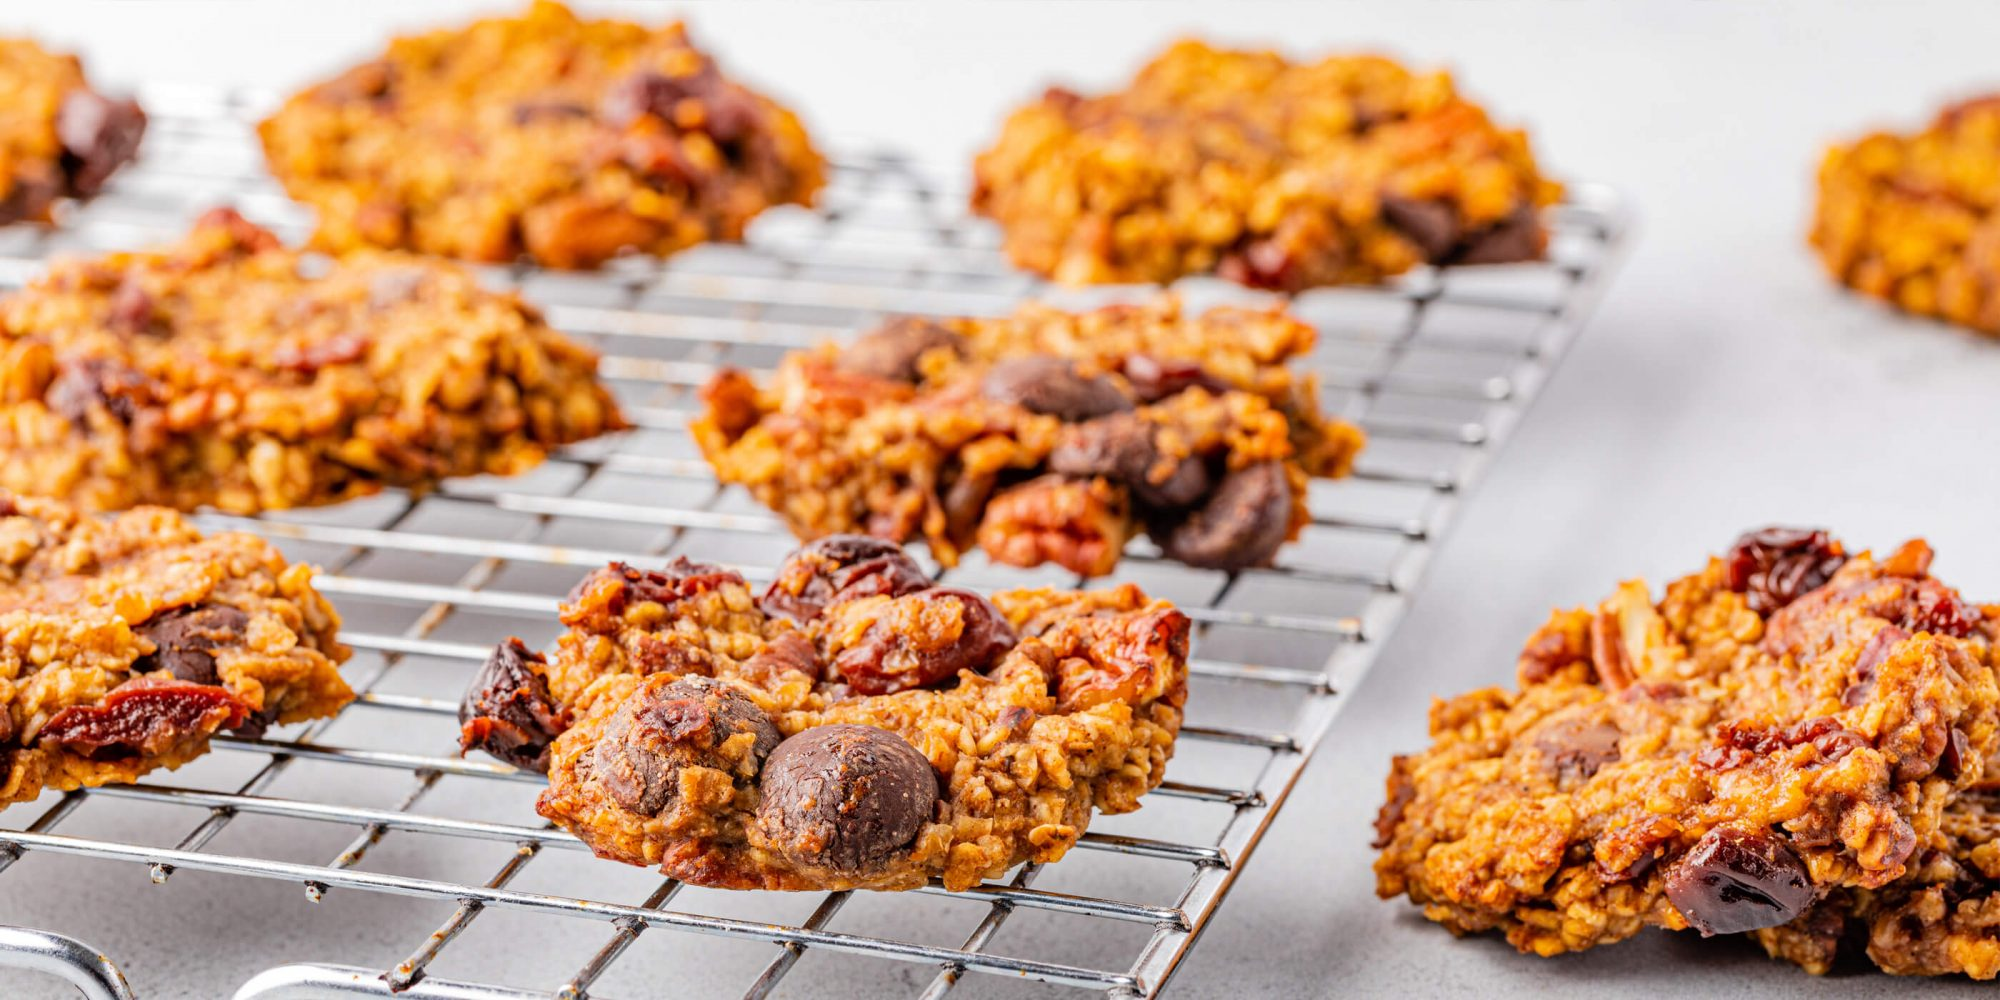 Cherry Chocolate Chip Trail Mix Cookies